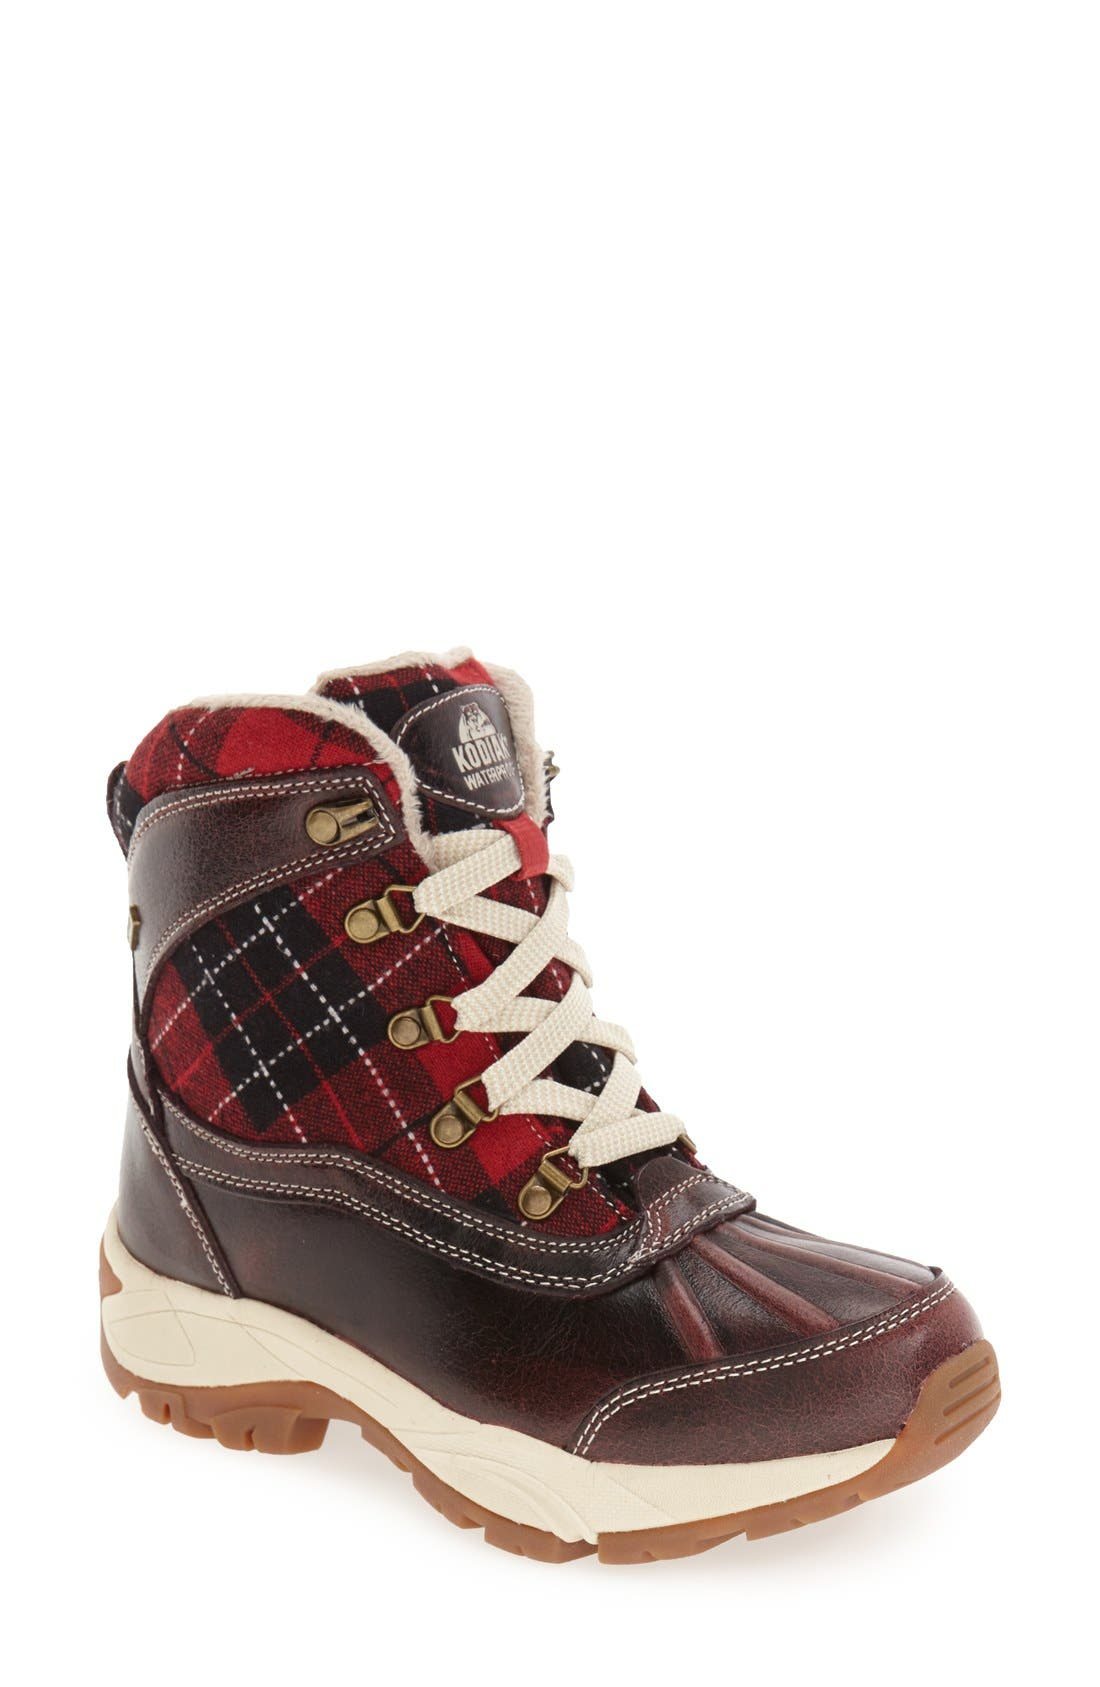 Rochelle Waterproof Insulated Winter Boot,                         Main,                         color, RED PLAID LEATHER